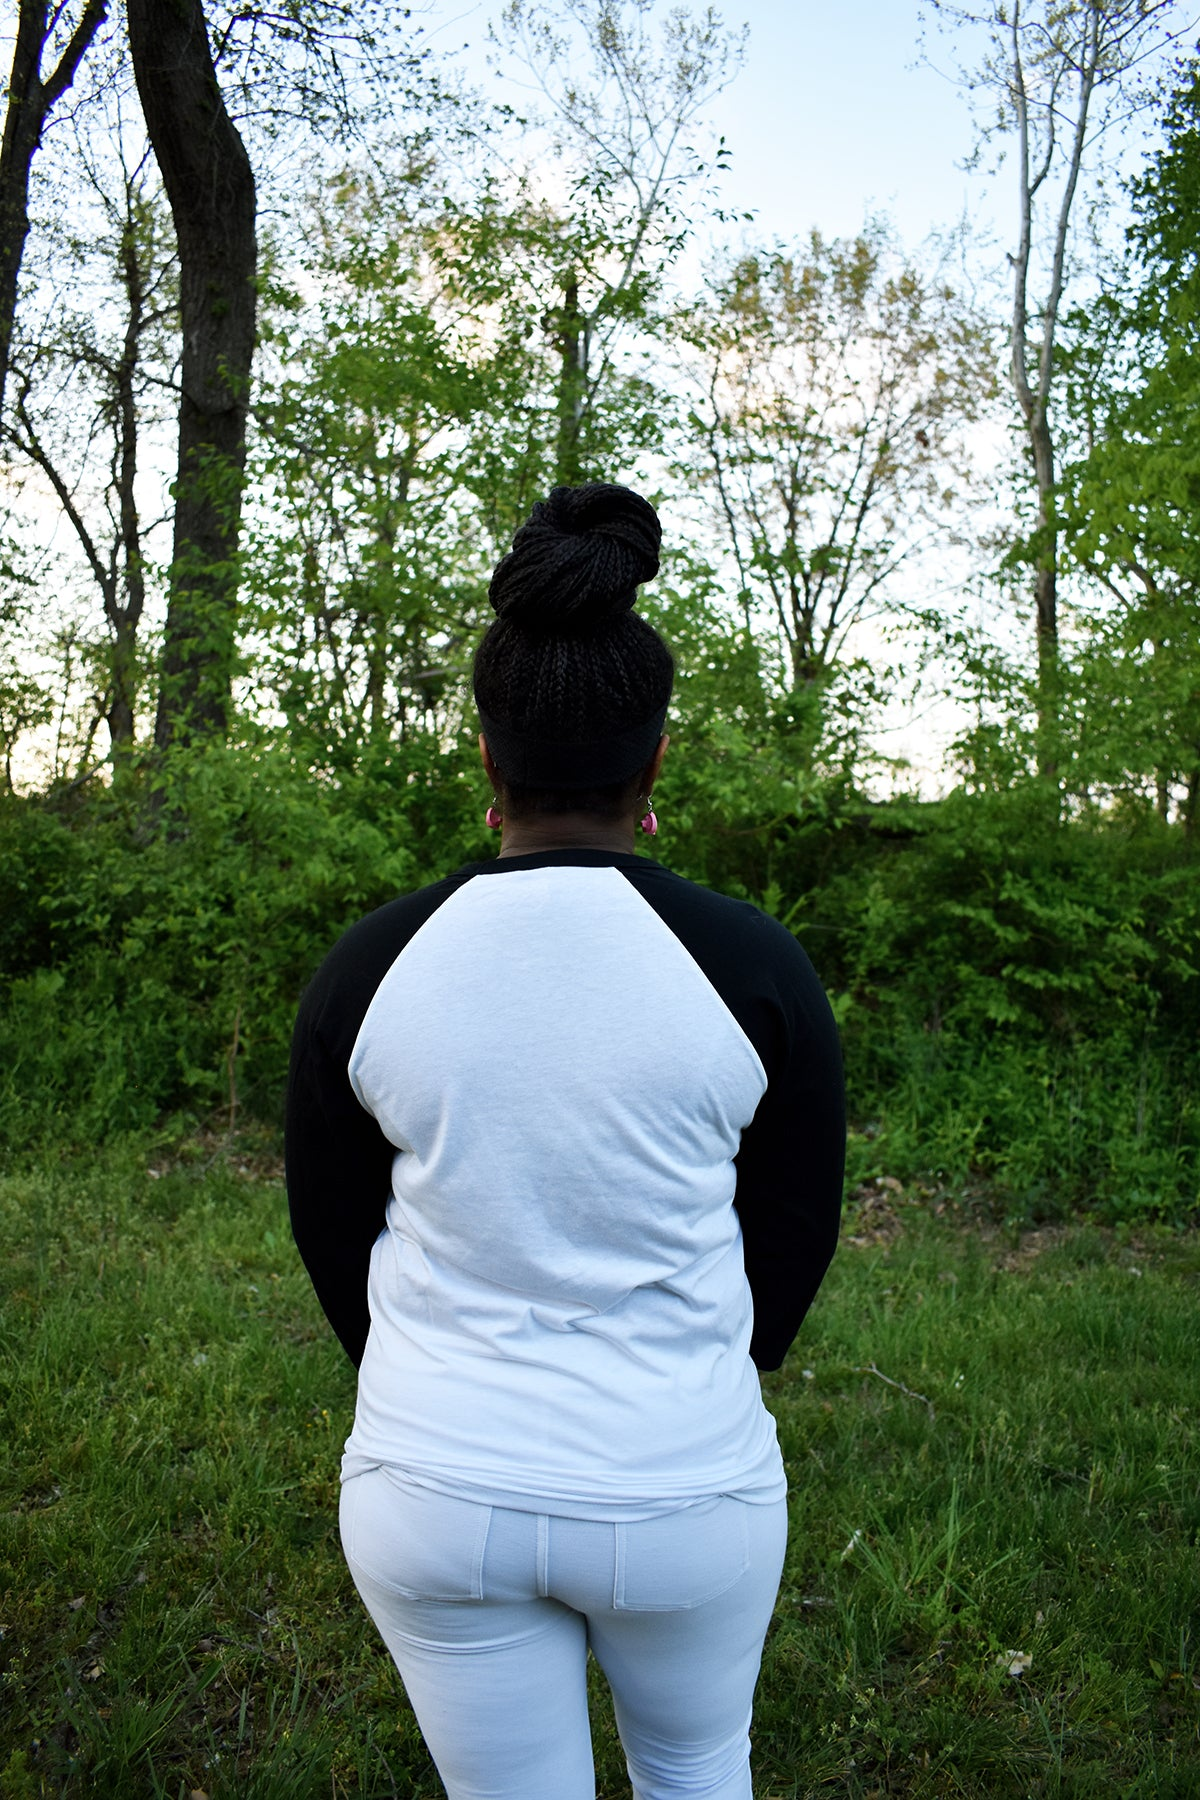 Female model wearing a baseball tee with a white body and black sleeves.